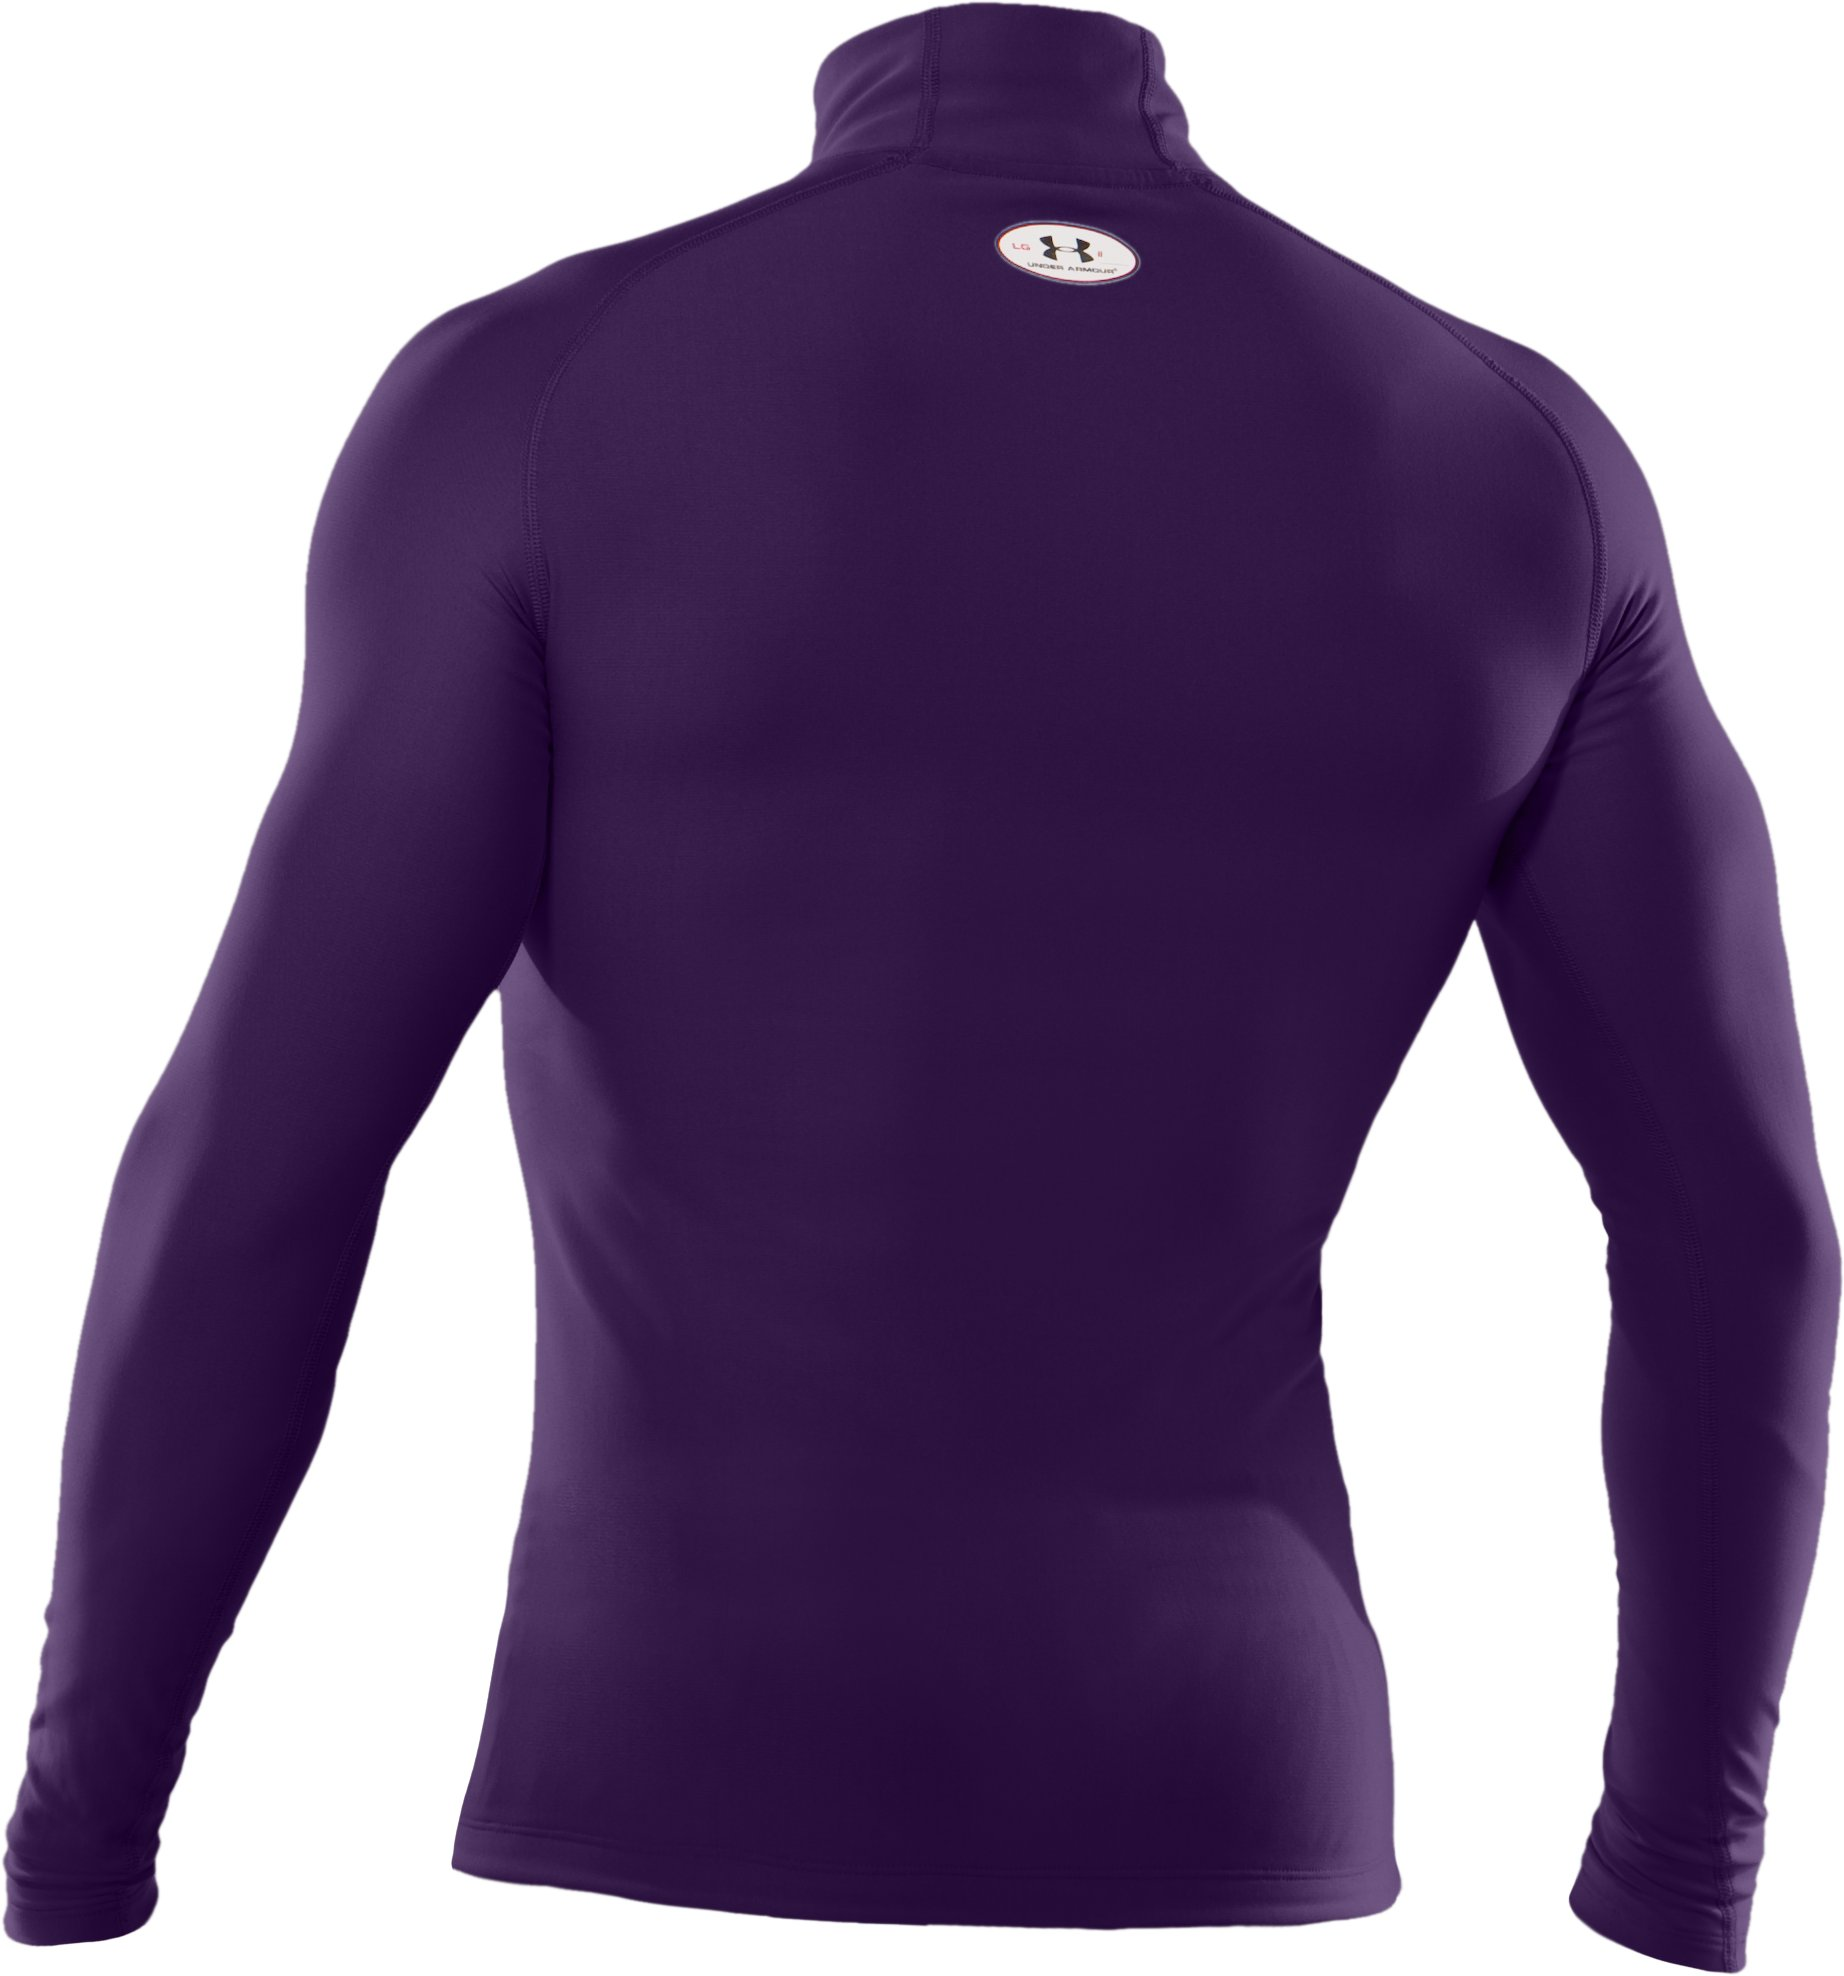 Men's ColdGear® Evo Long Sleeve Compression Mock, Purple, undefined